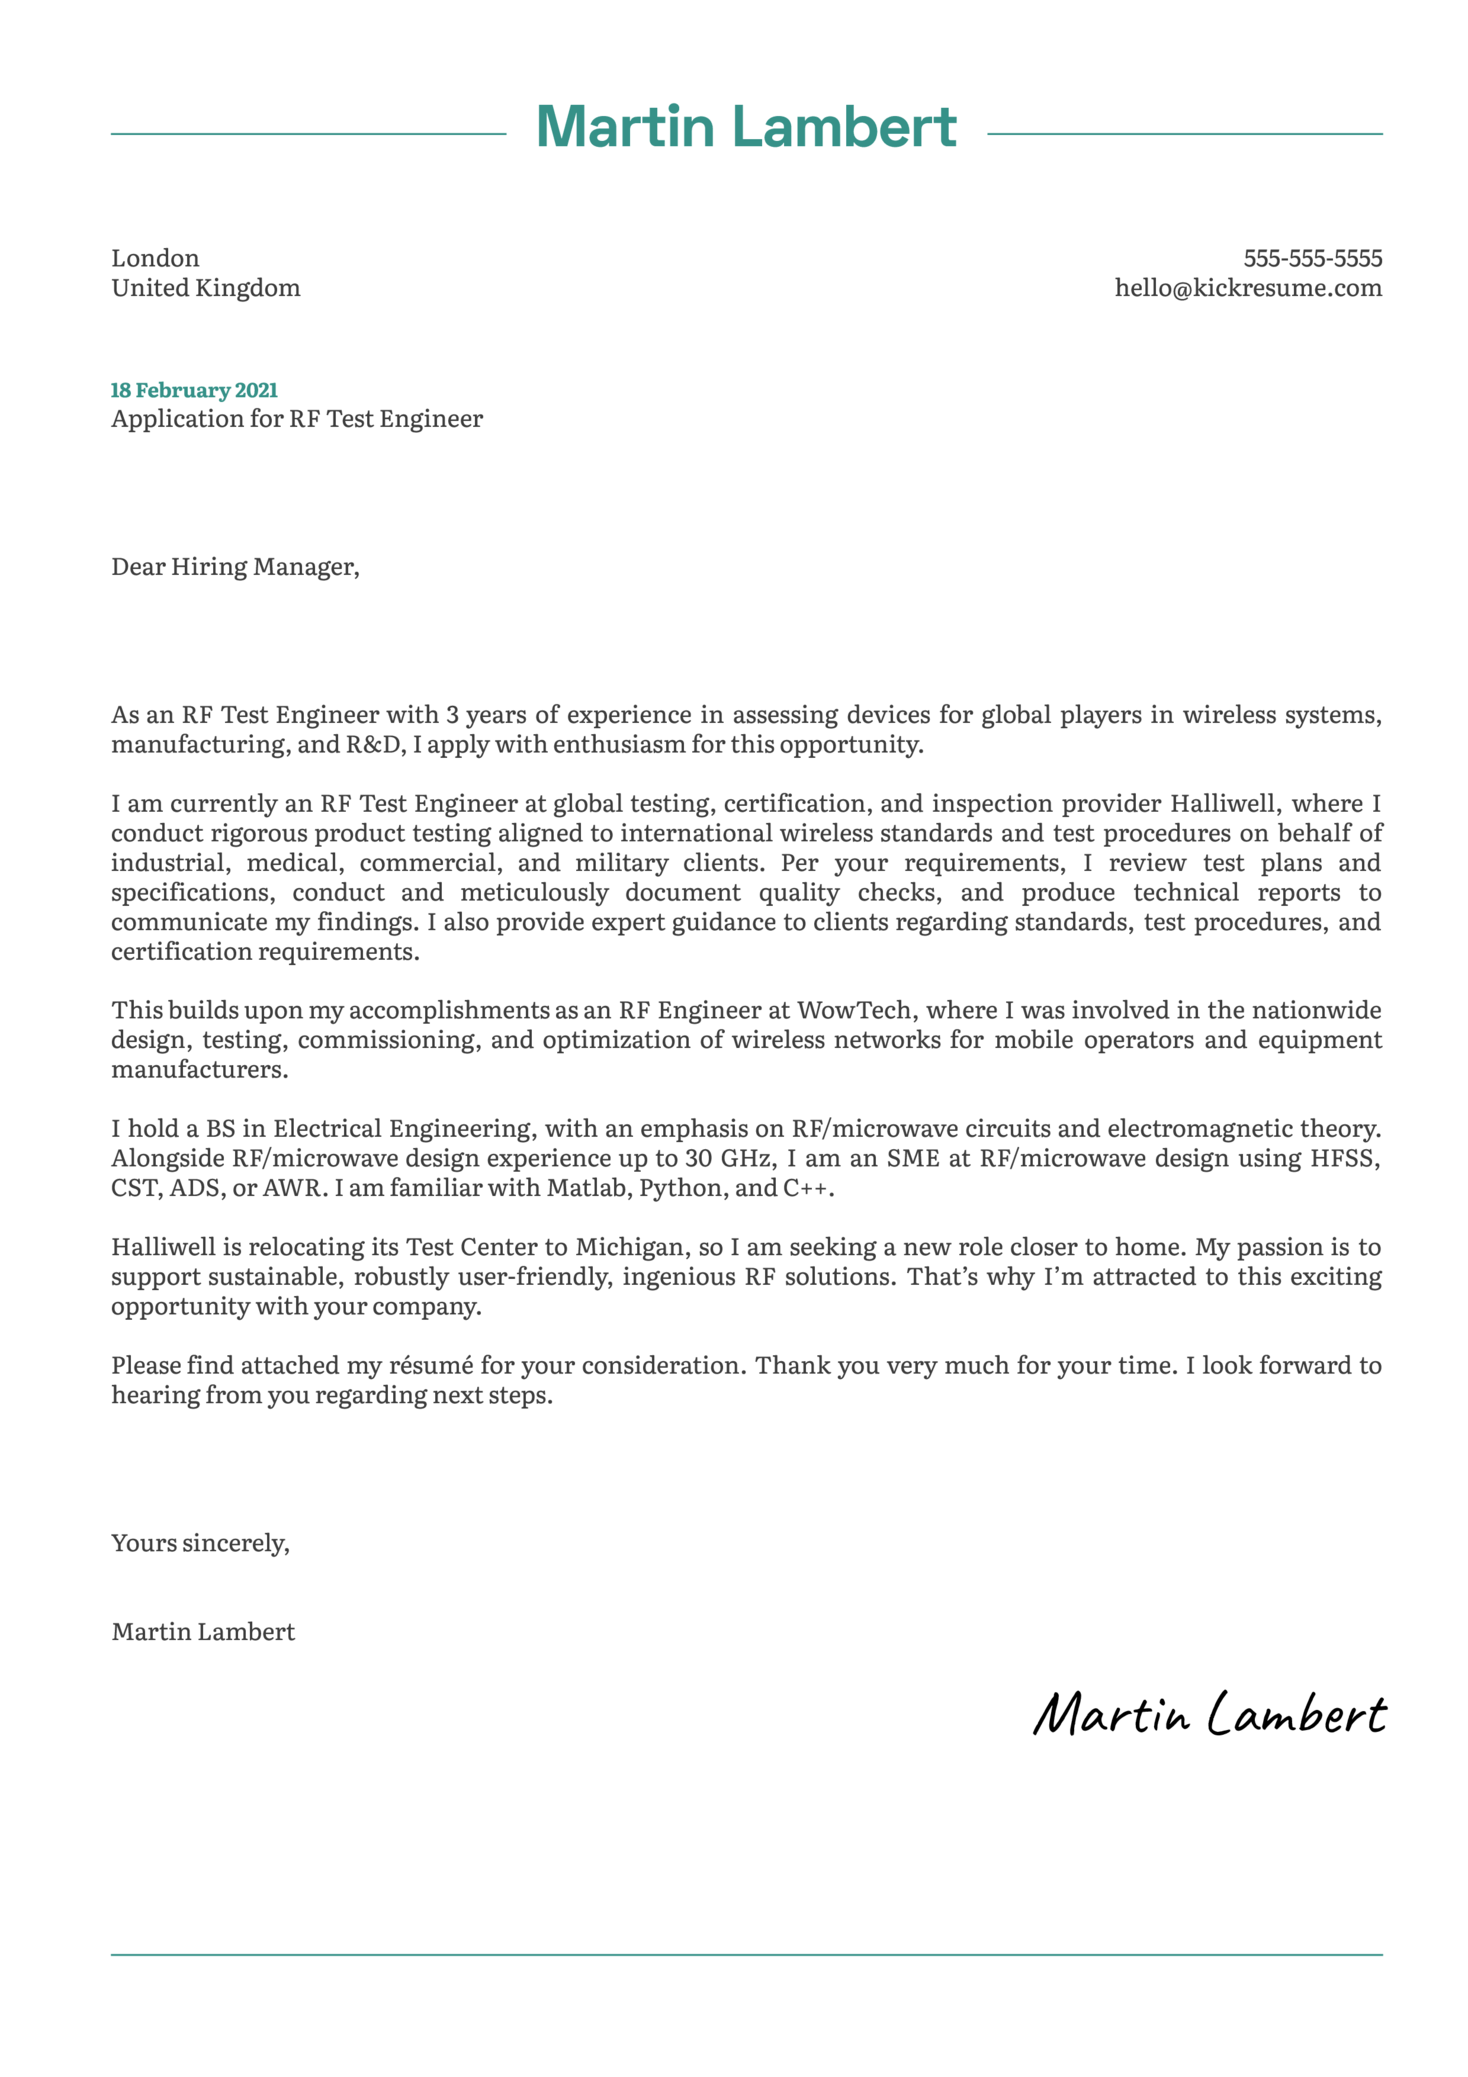 RF Test Engineer Cover Letter Example